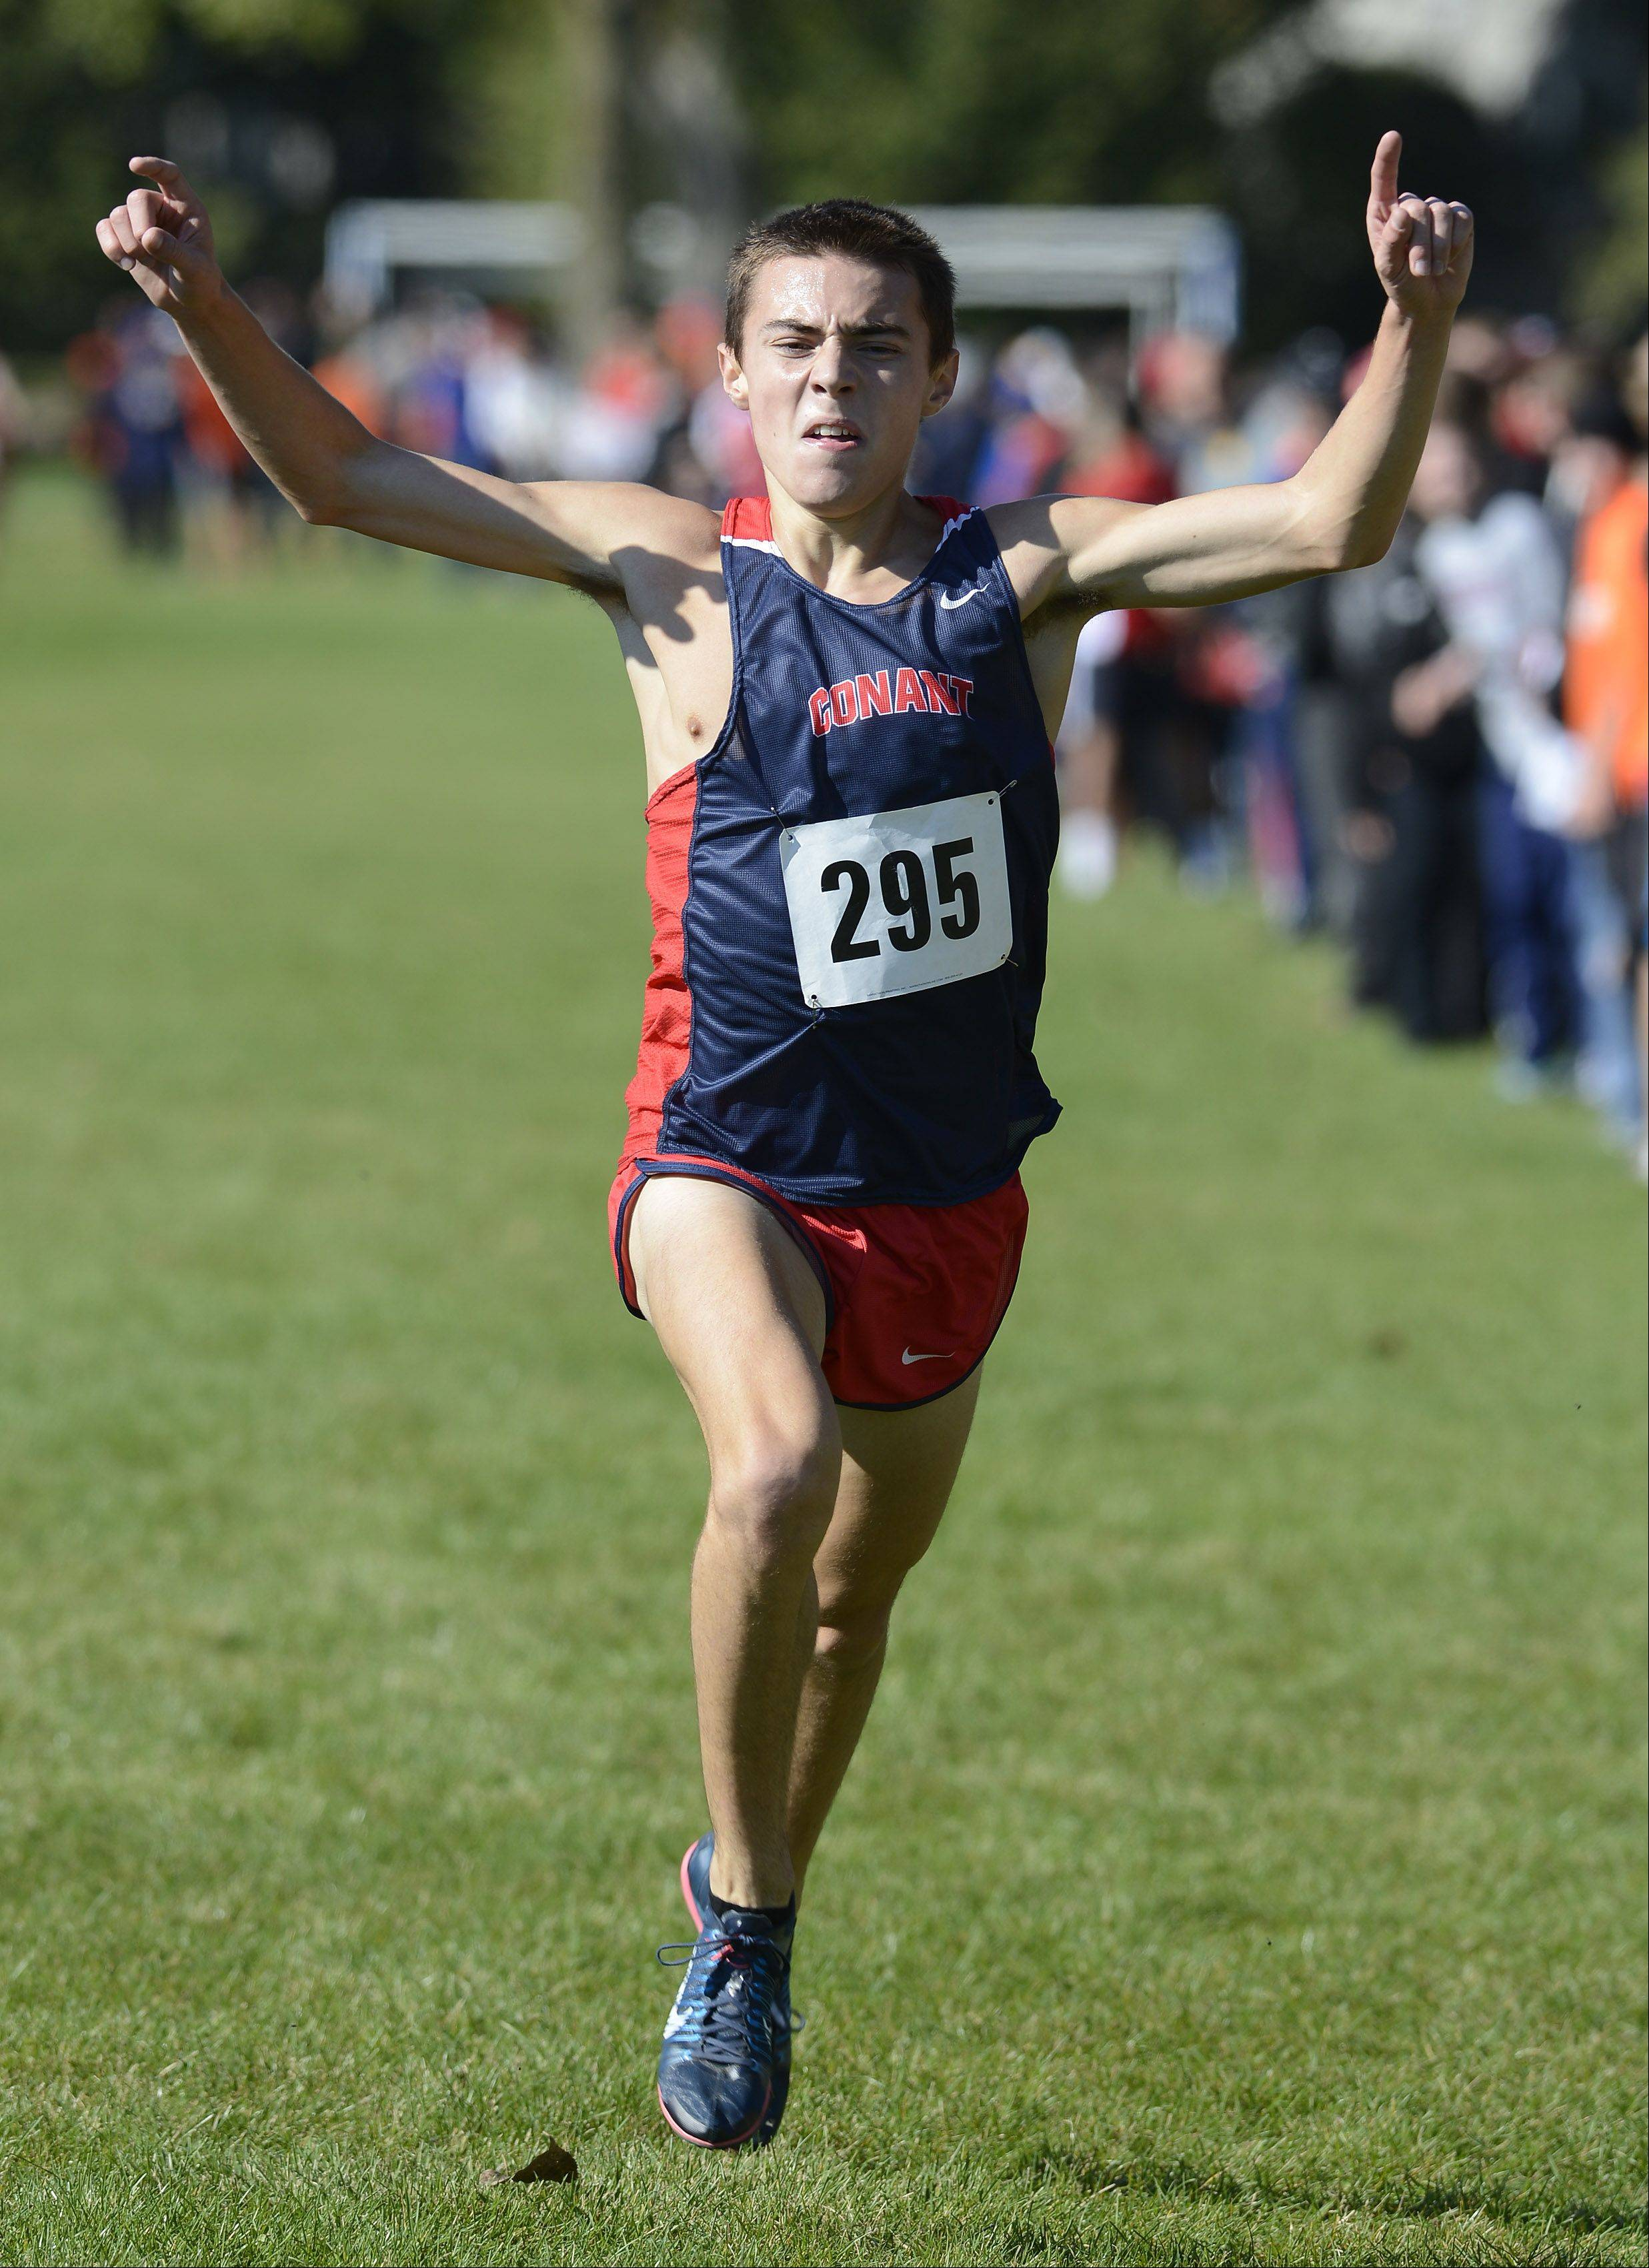 Conant's Zach Dale celebrates as he wins the boys race of Saturday's Mid-Suburban League cross country meet at Willow Stream Park in Buffalo Grove.